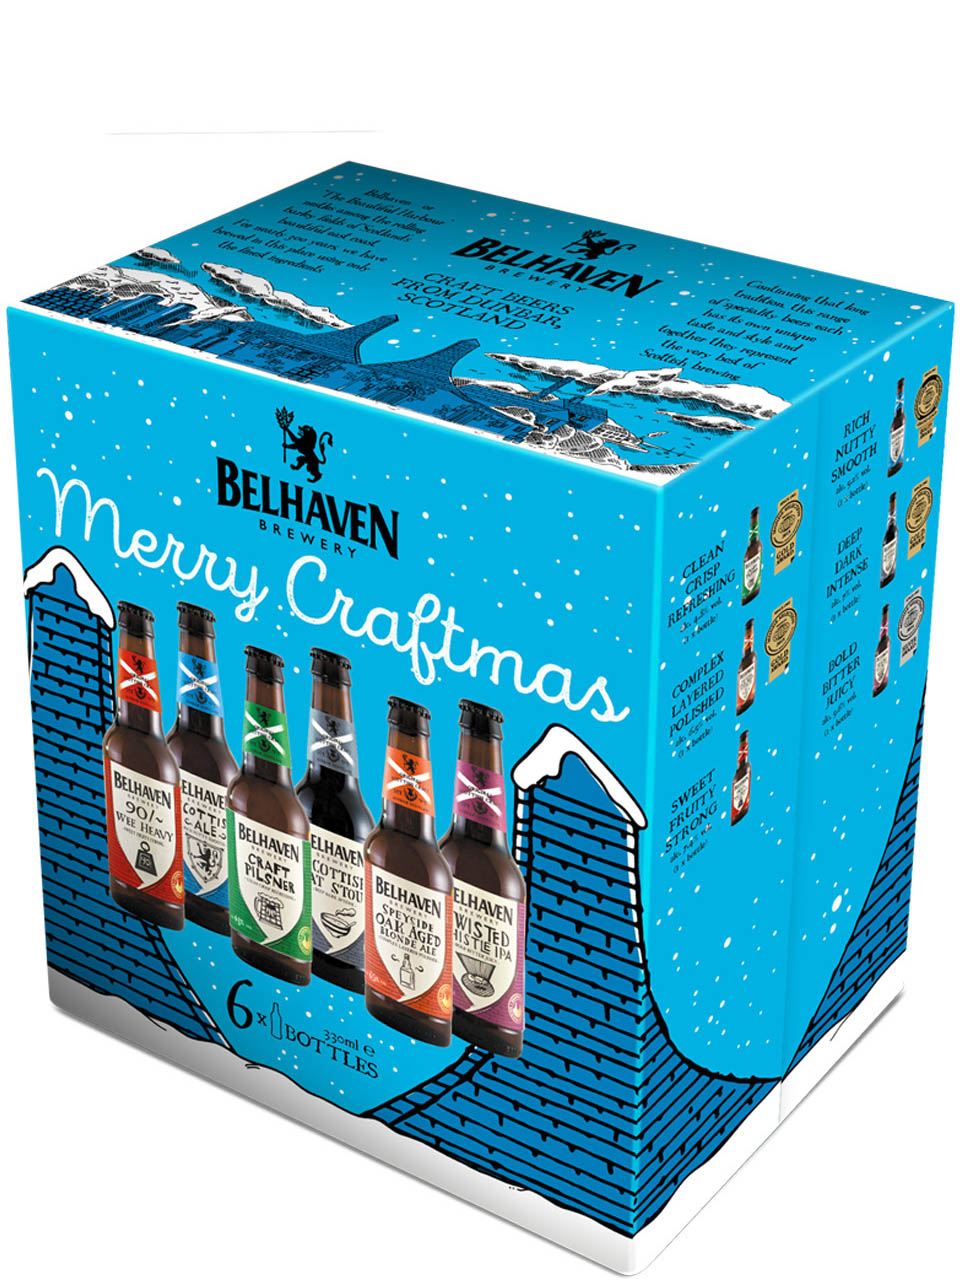 Belhaven Brewery Merry Craftmas 6 Pack Bottles